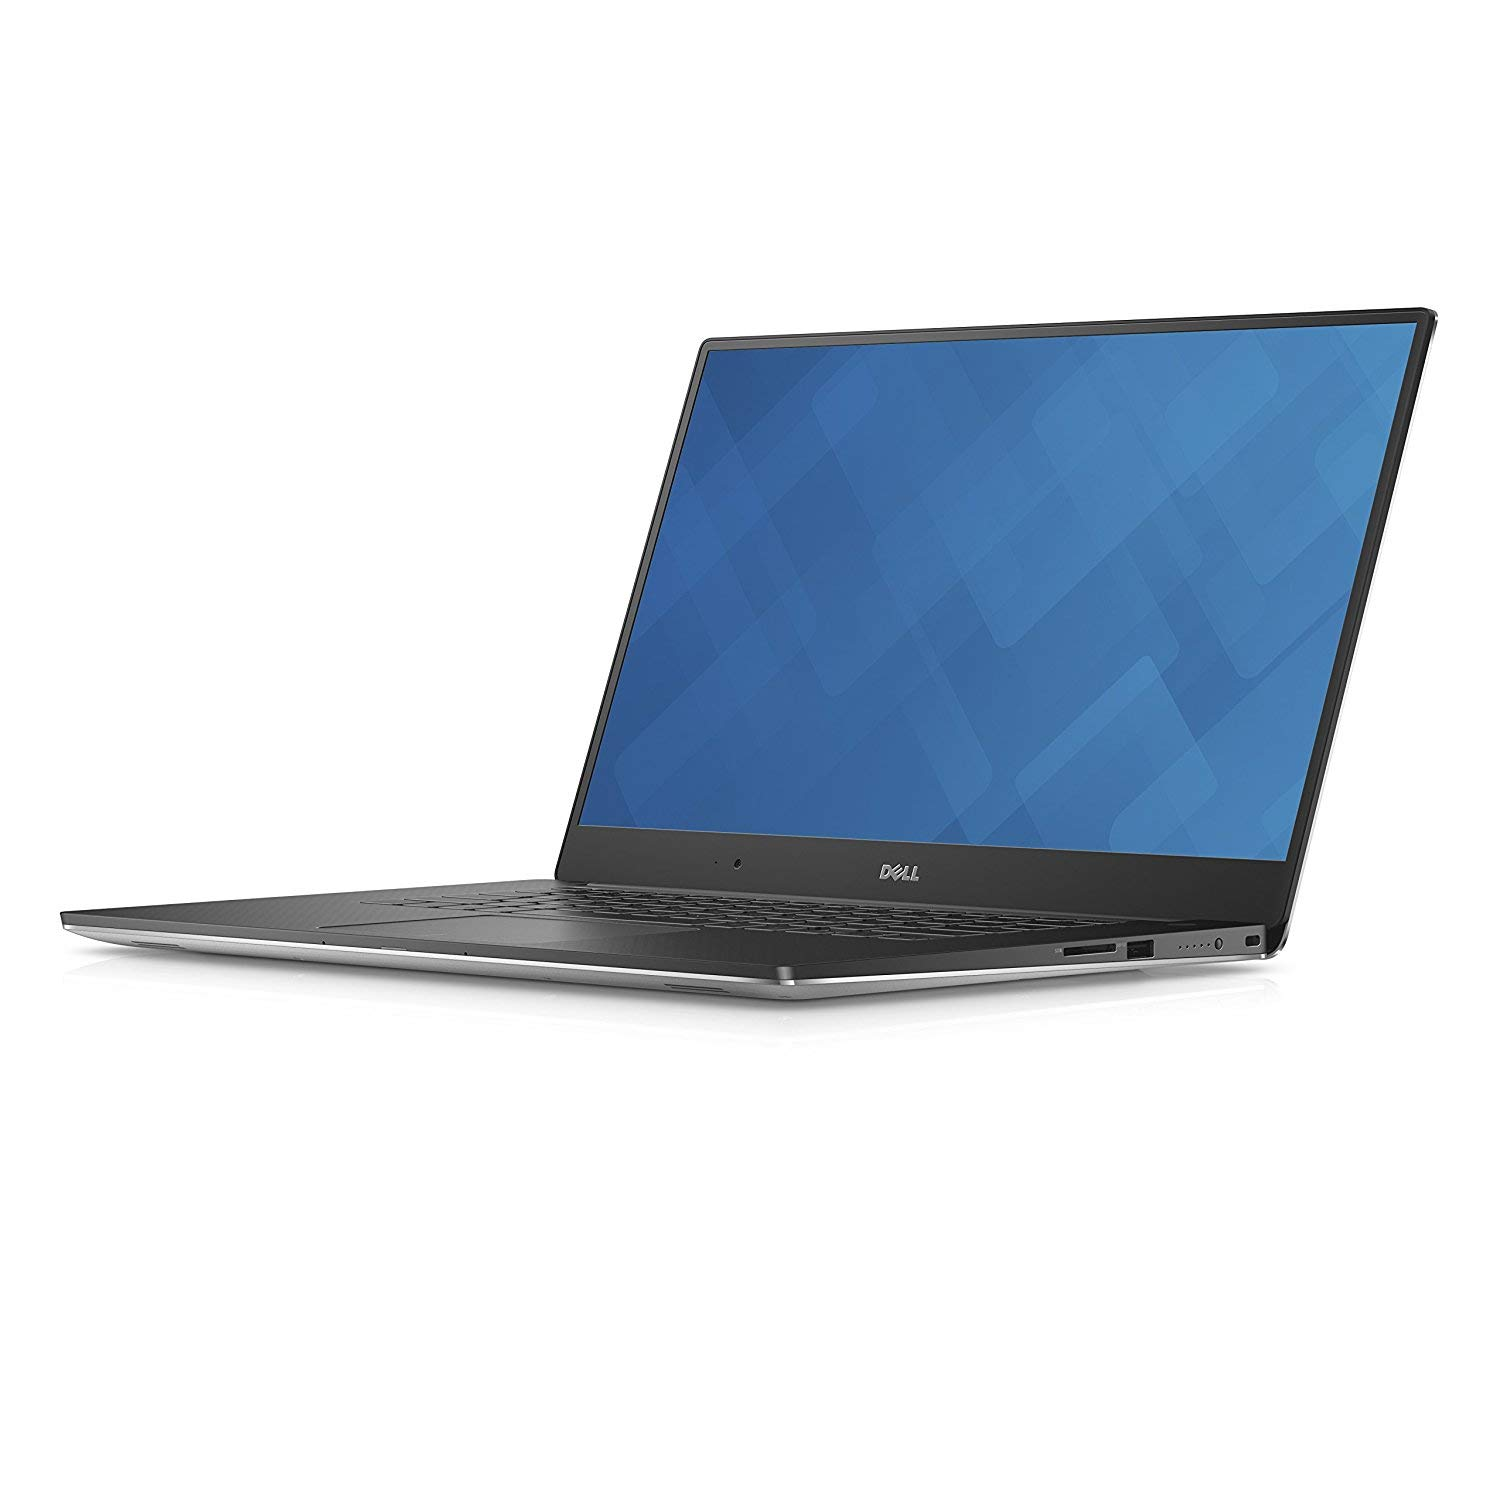 Buy Dell Laptop Precision 5520 i7 256gb Online at Low Prices